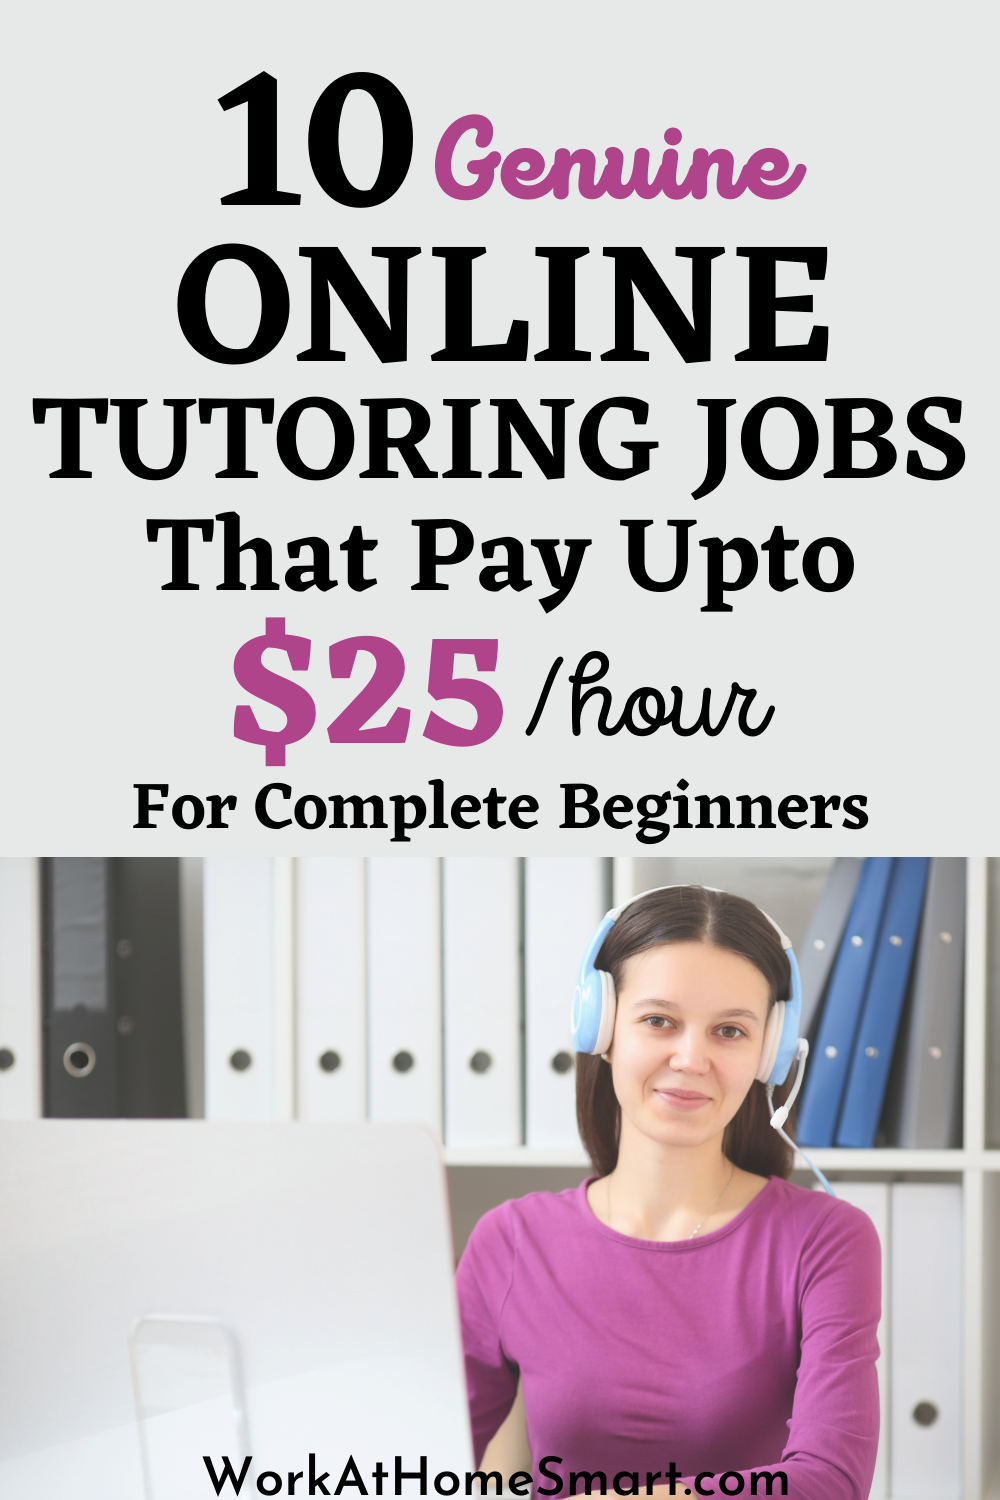 10 Best Online Tutoring Jobs To Teach From Home Online Tutoring Jobs Tutoring Jobs Online Tutoring